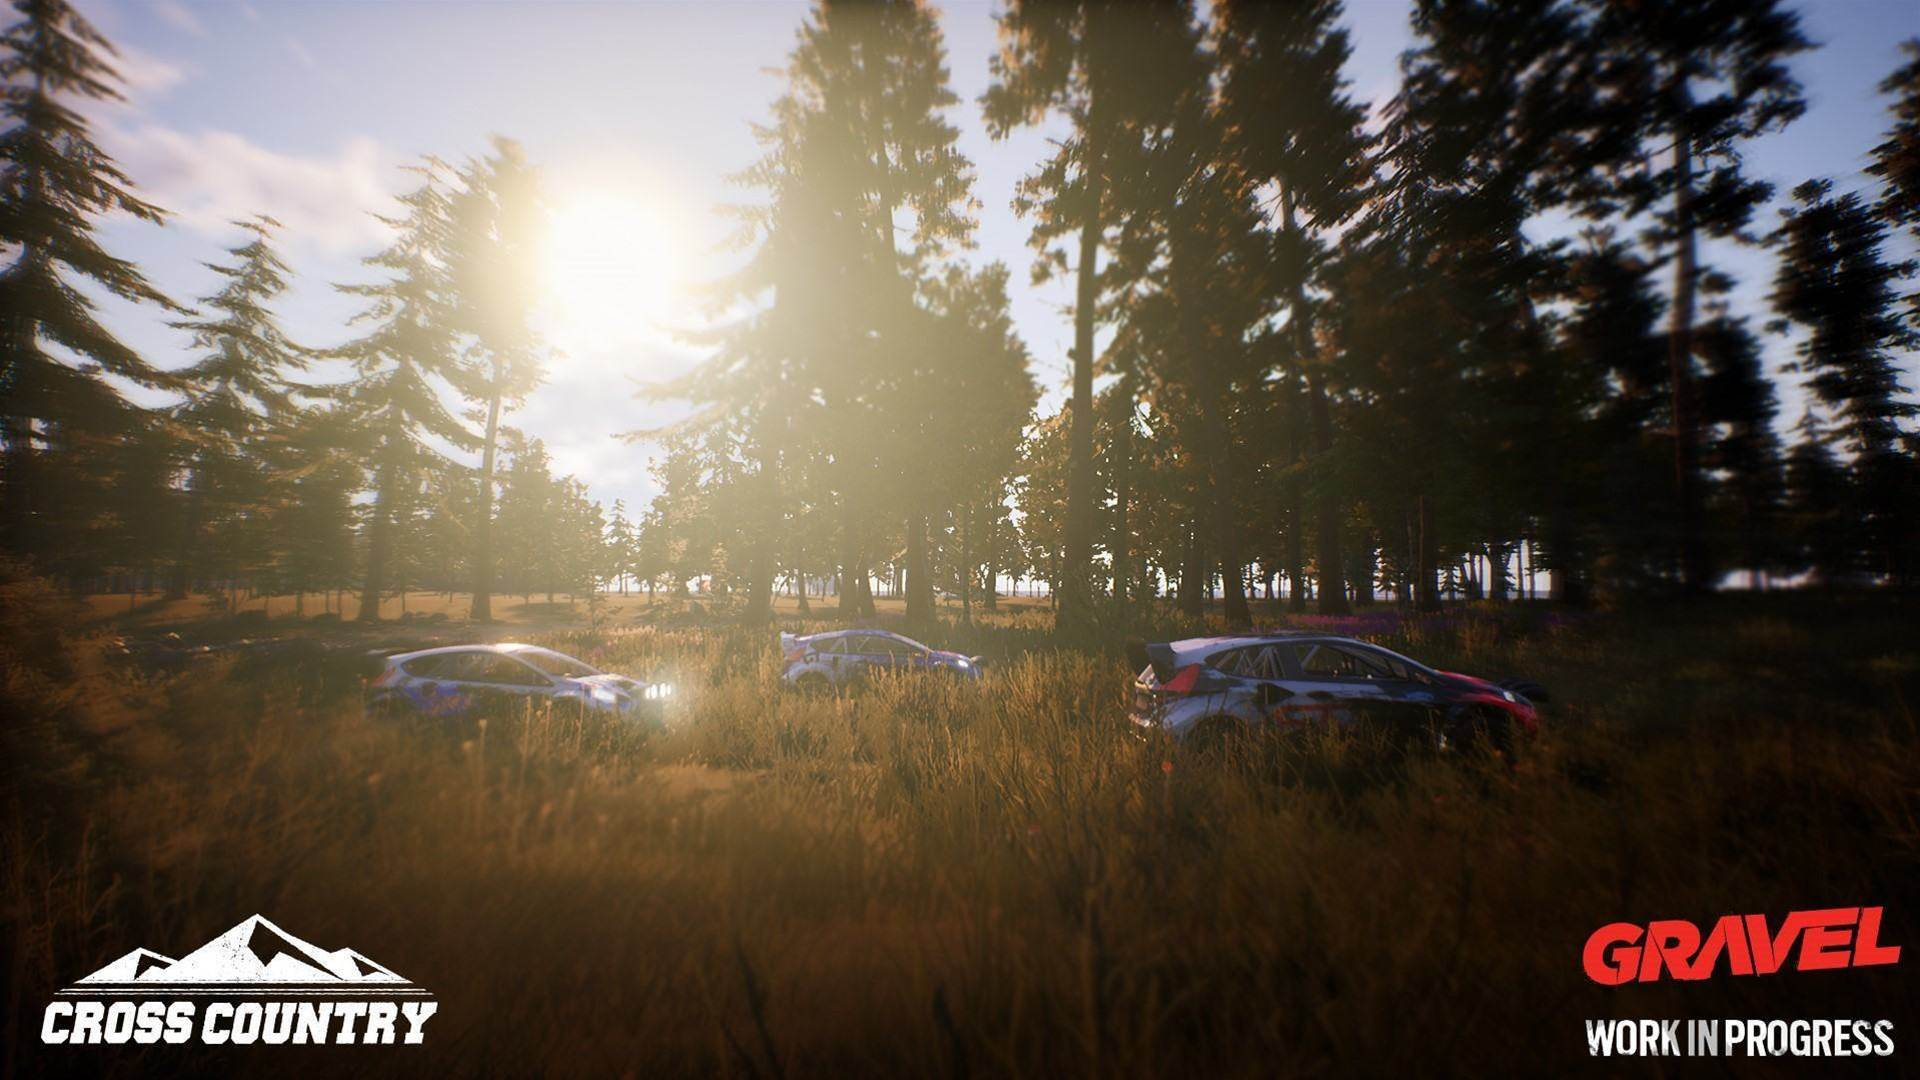 Kick up the dirt with these Gravel screenshots